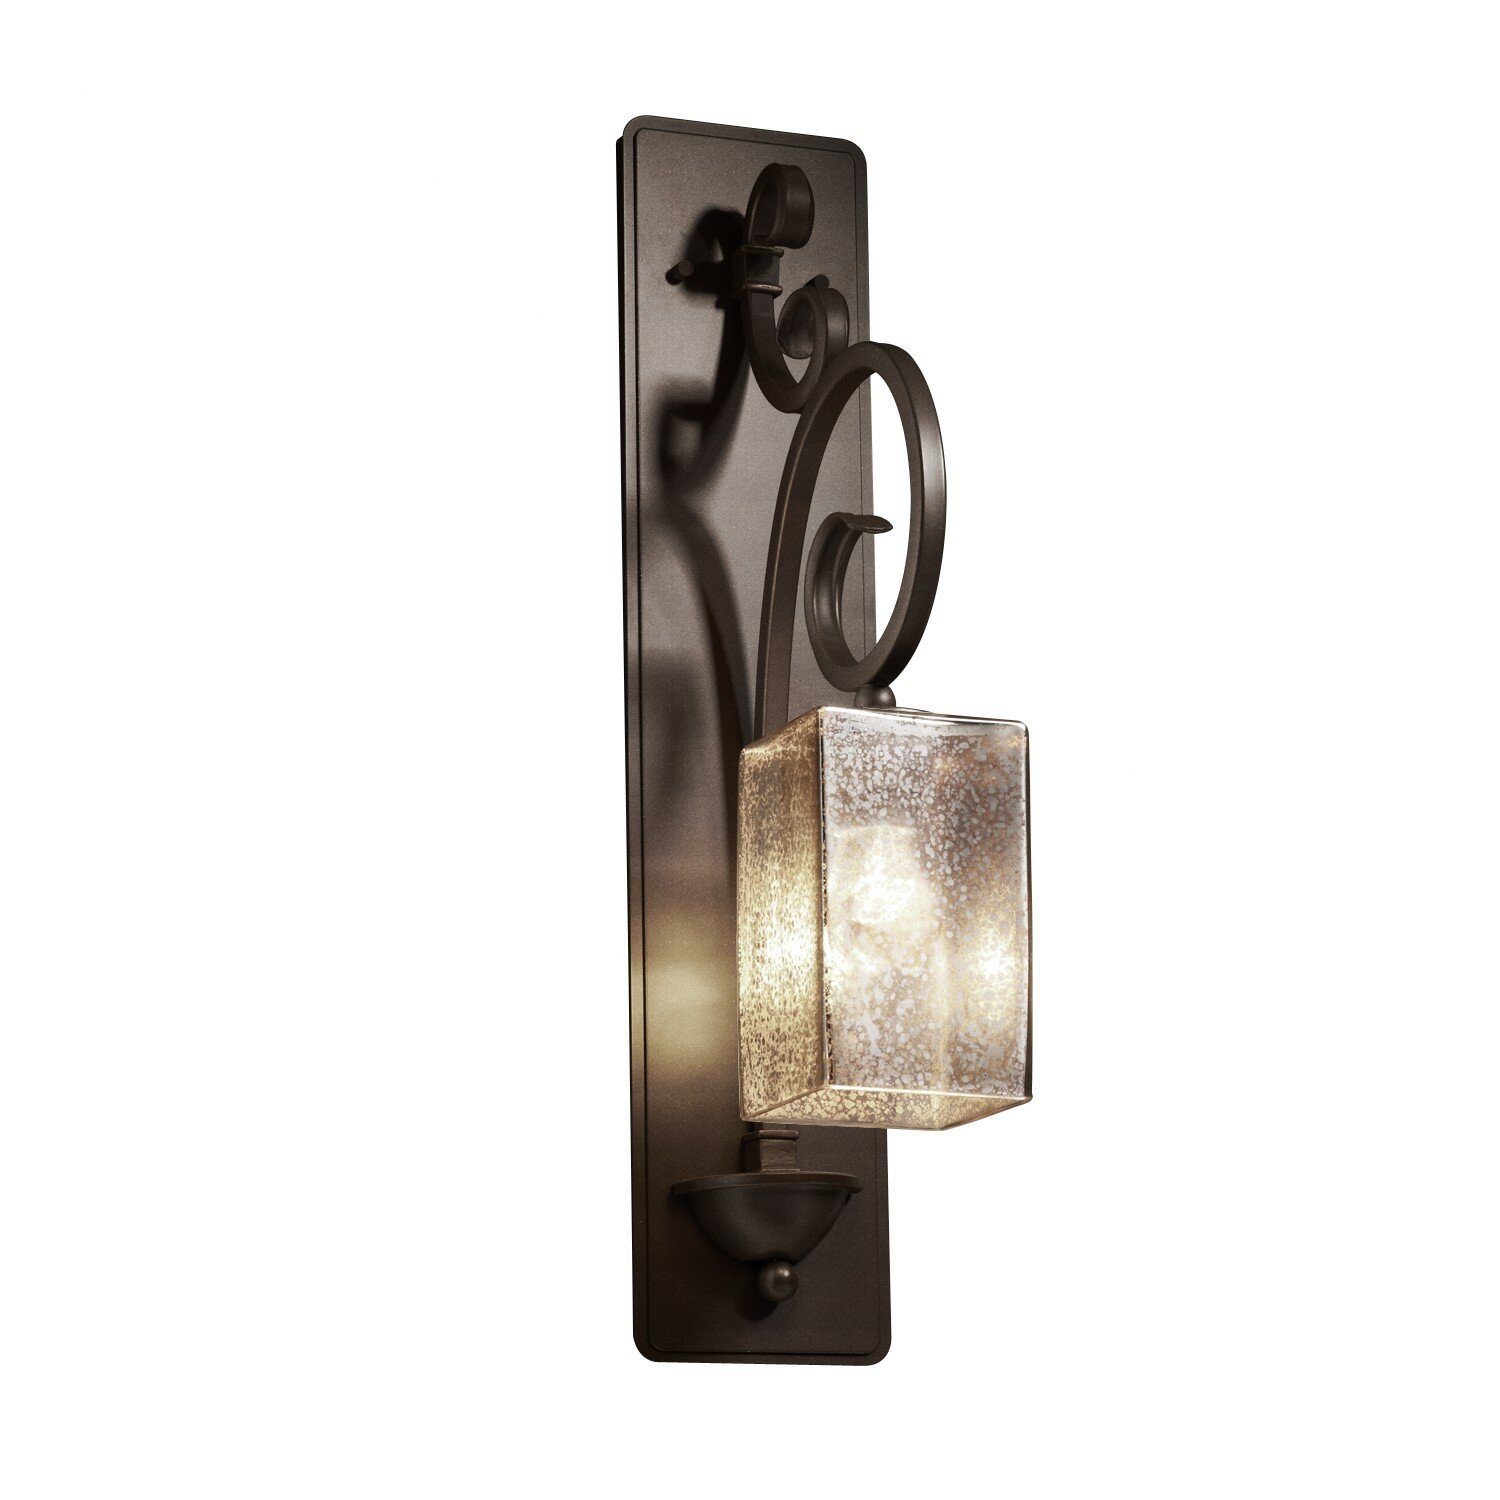 Justice Design Group Fusion Victoria 1 Light Wall Sconce & Reviews Wayfair